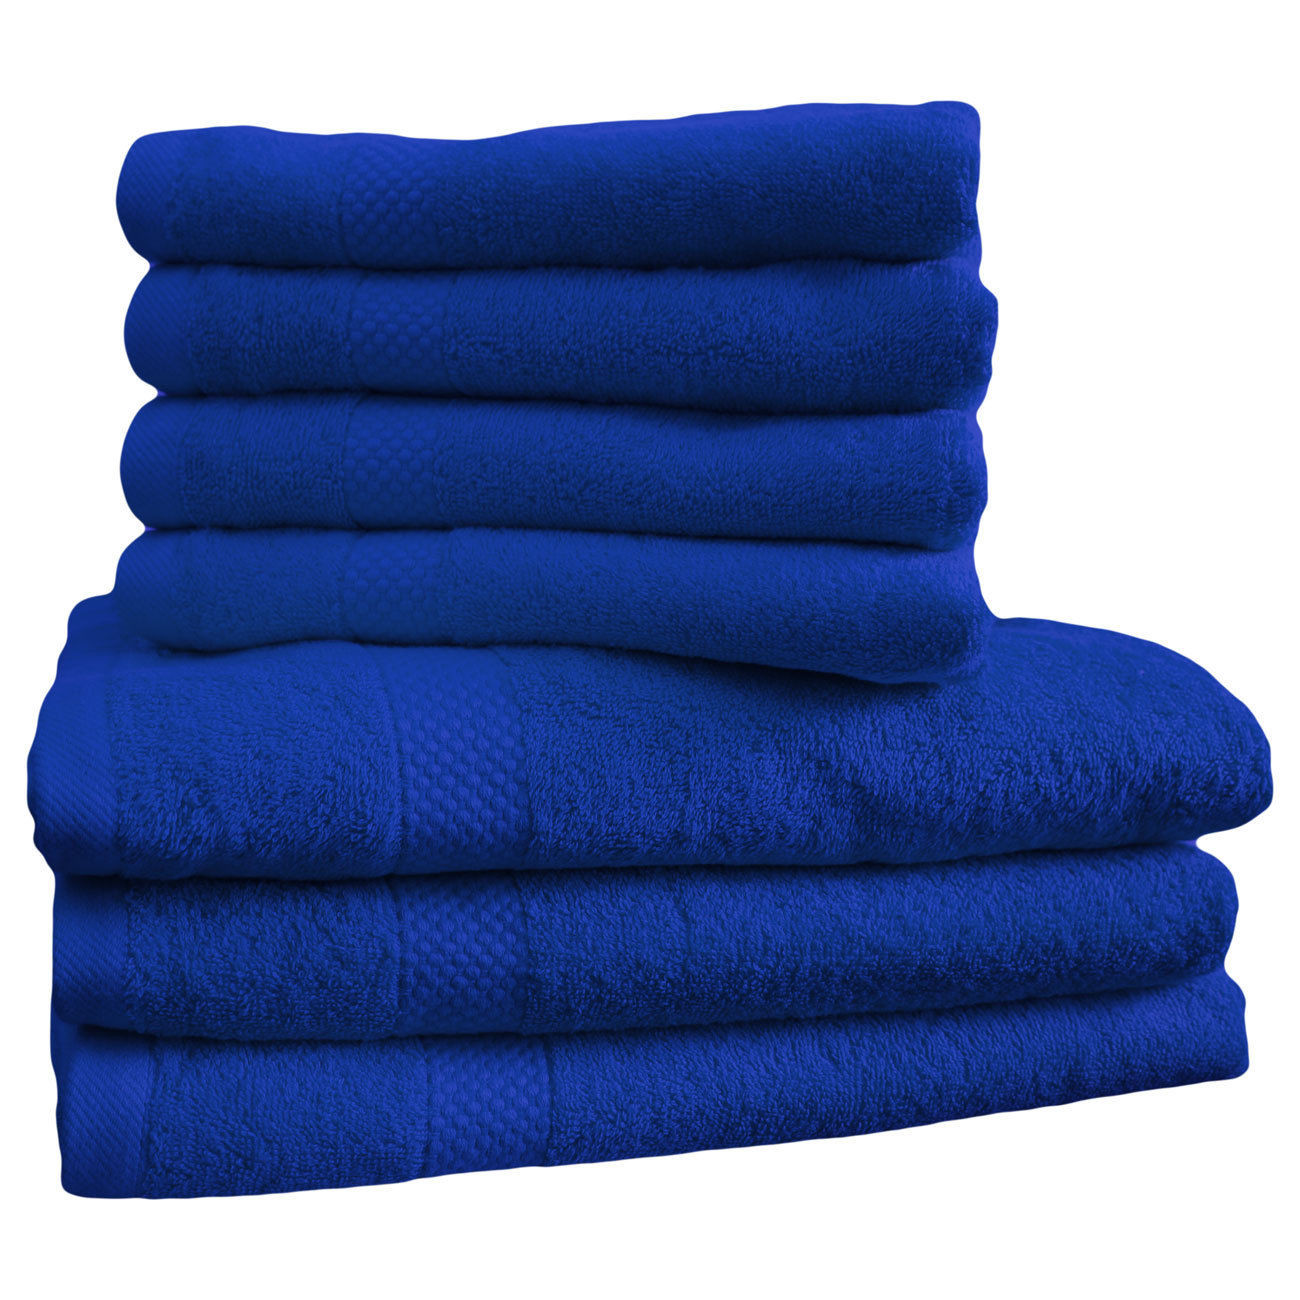 Dyckhoff Planet Towel 100% Organic Cotton - Blue